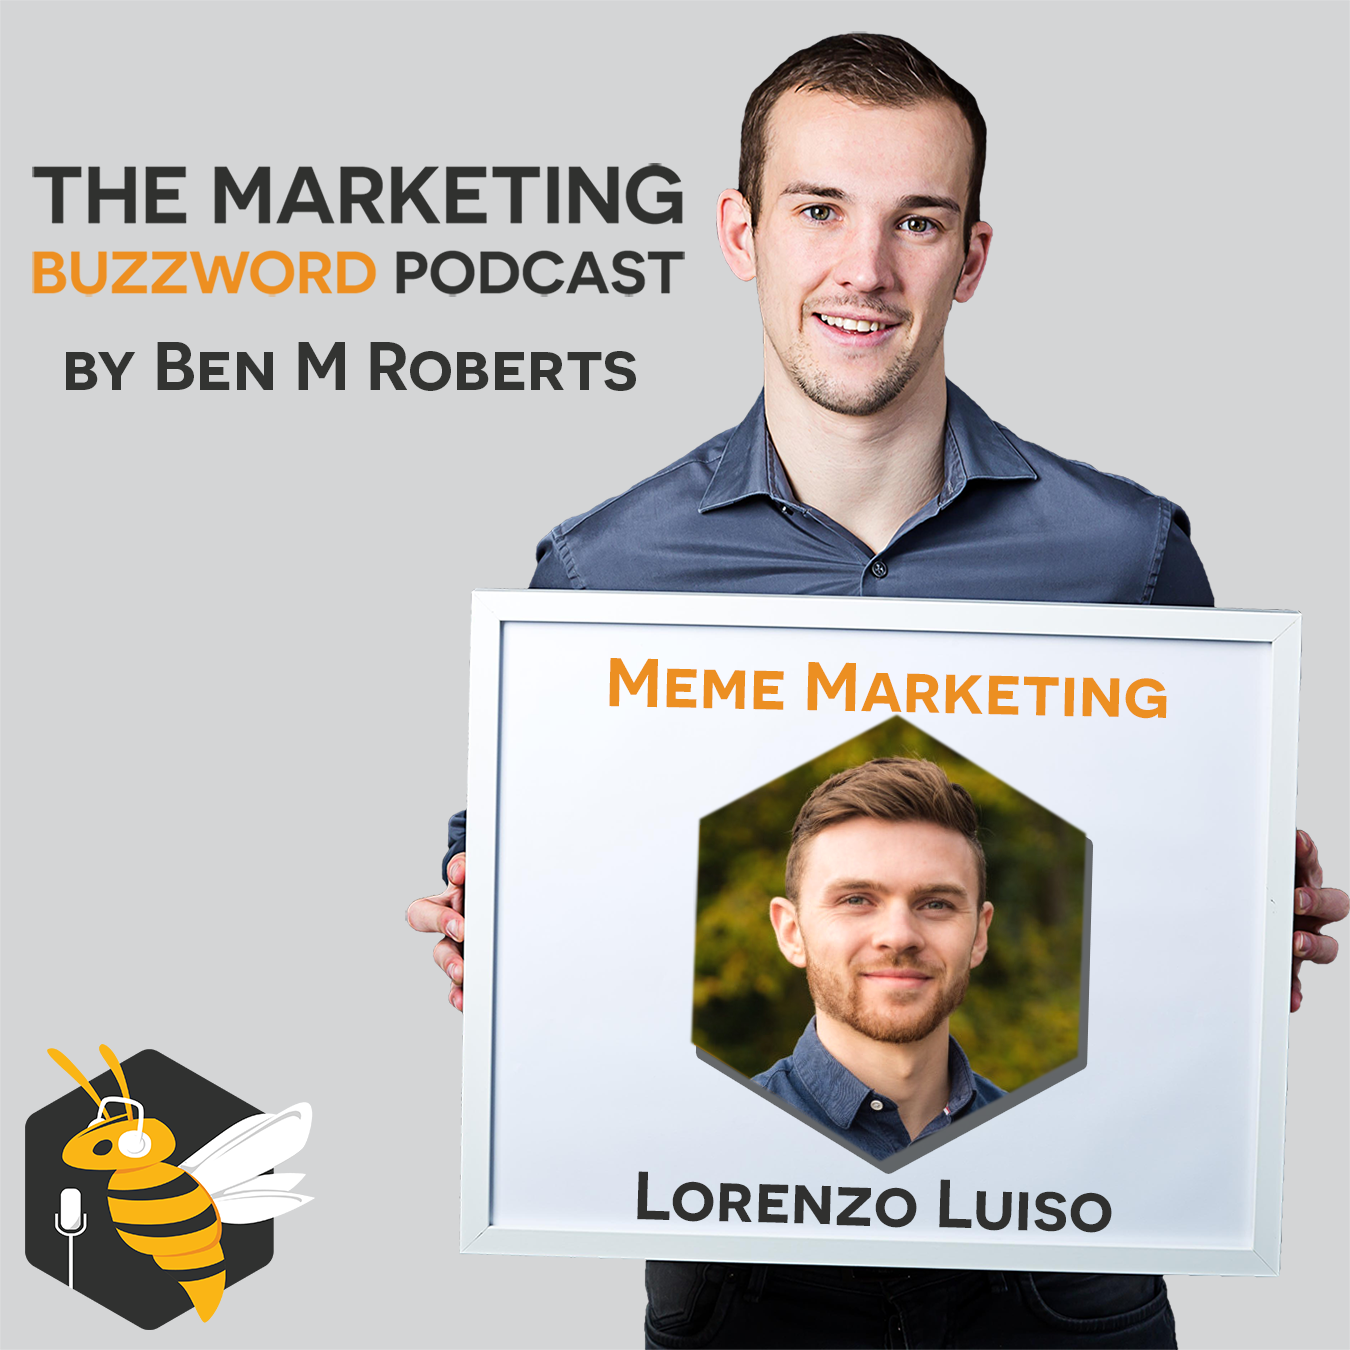 Meme Marketing - What is meme marketing? Should and can you incorporate memes into a marketing strategy? How can memes make you more relatable?